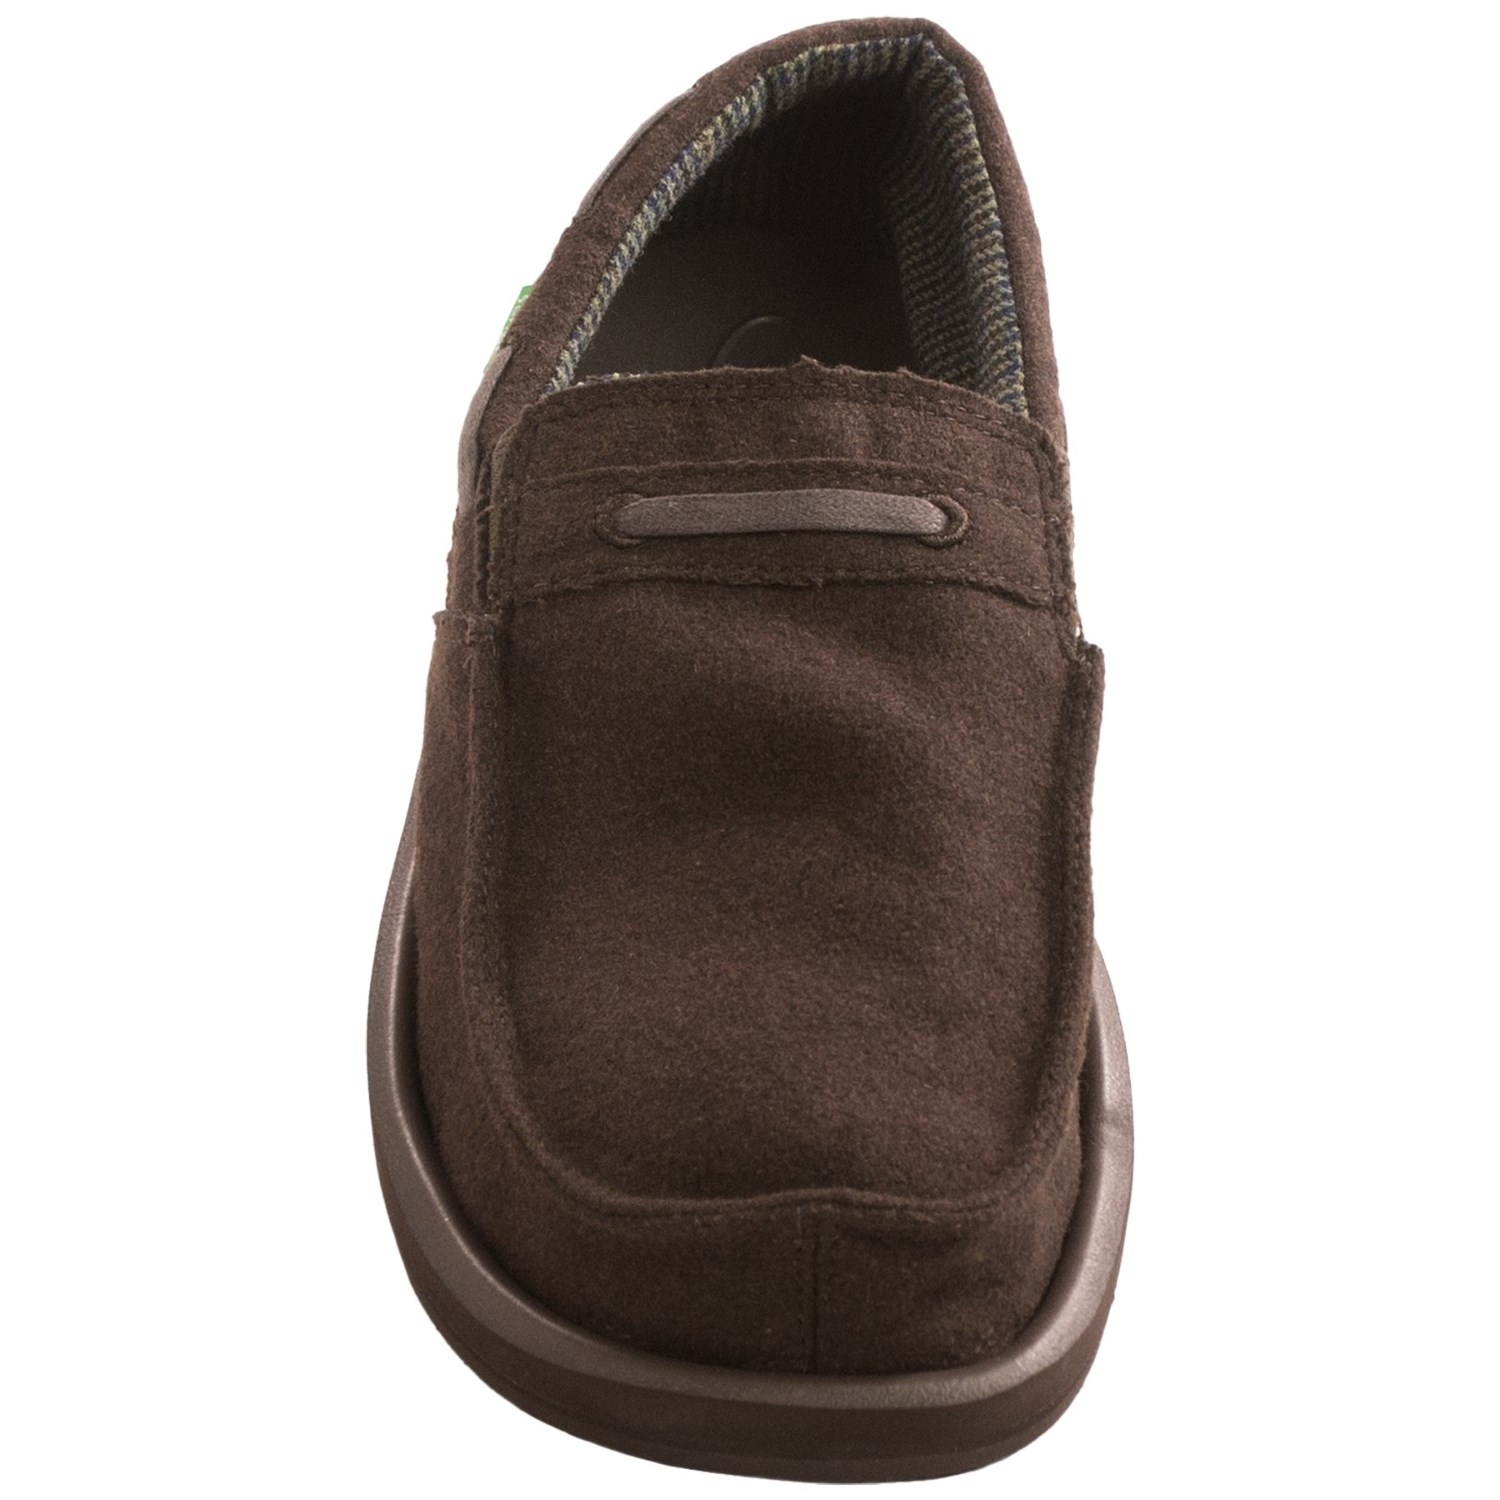 Wool Footbed For Men Shoes